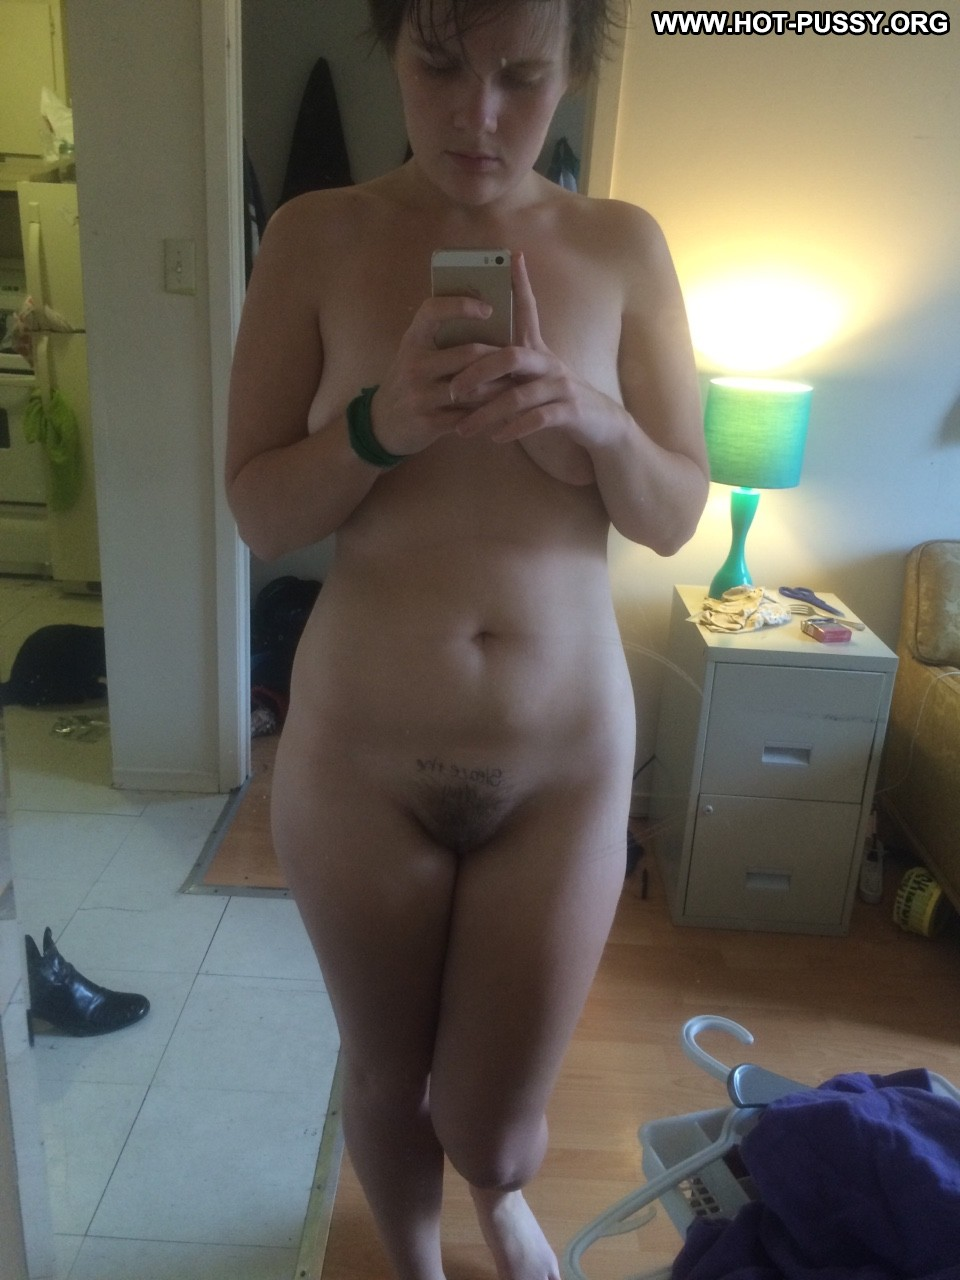 are elin nordegren nude pictures real